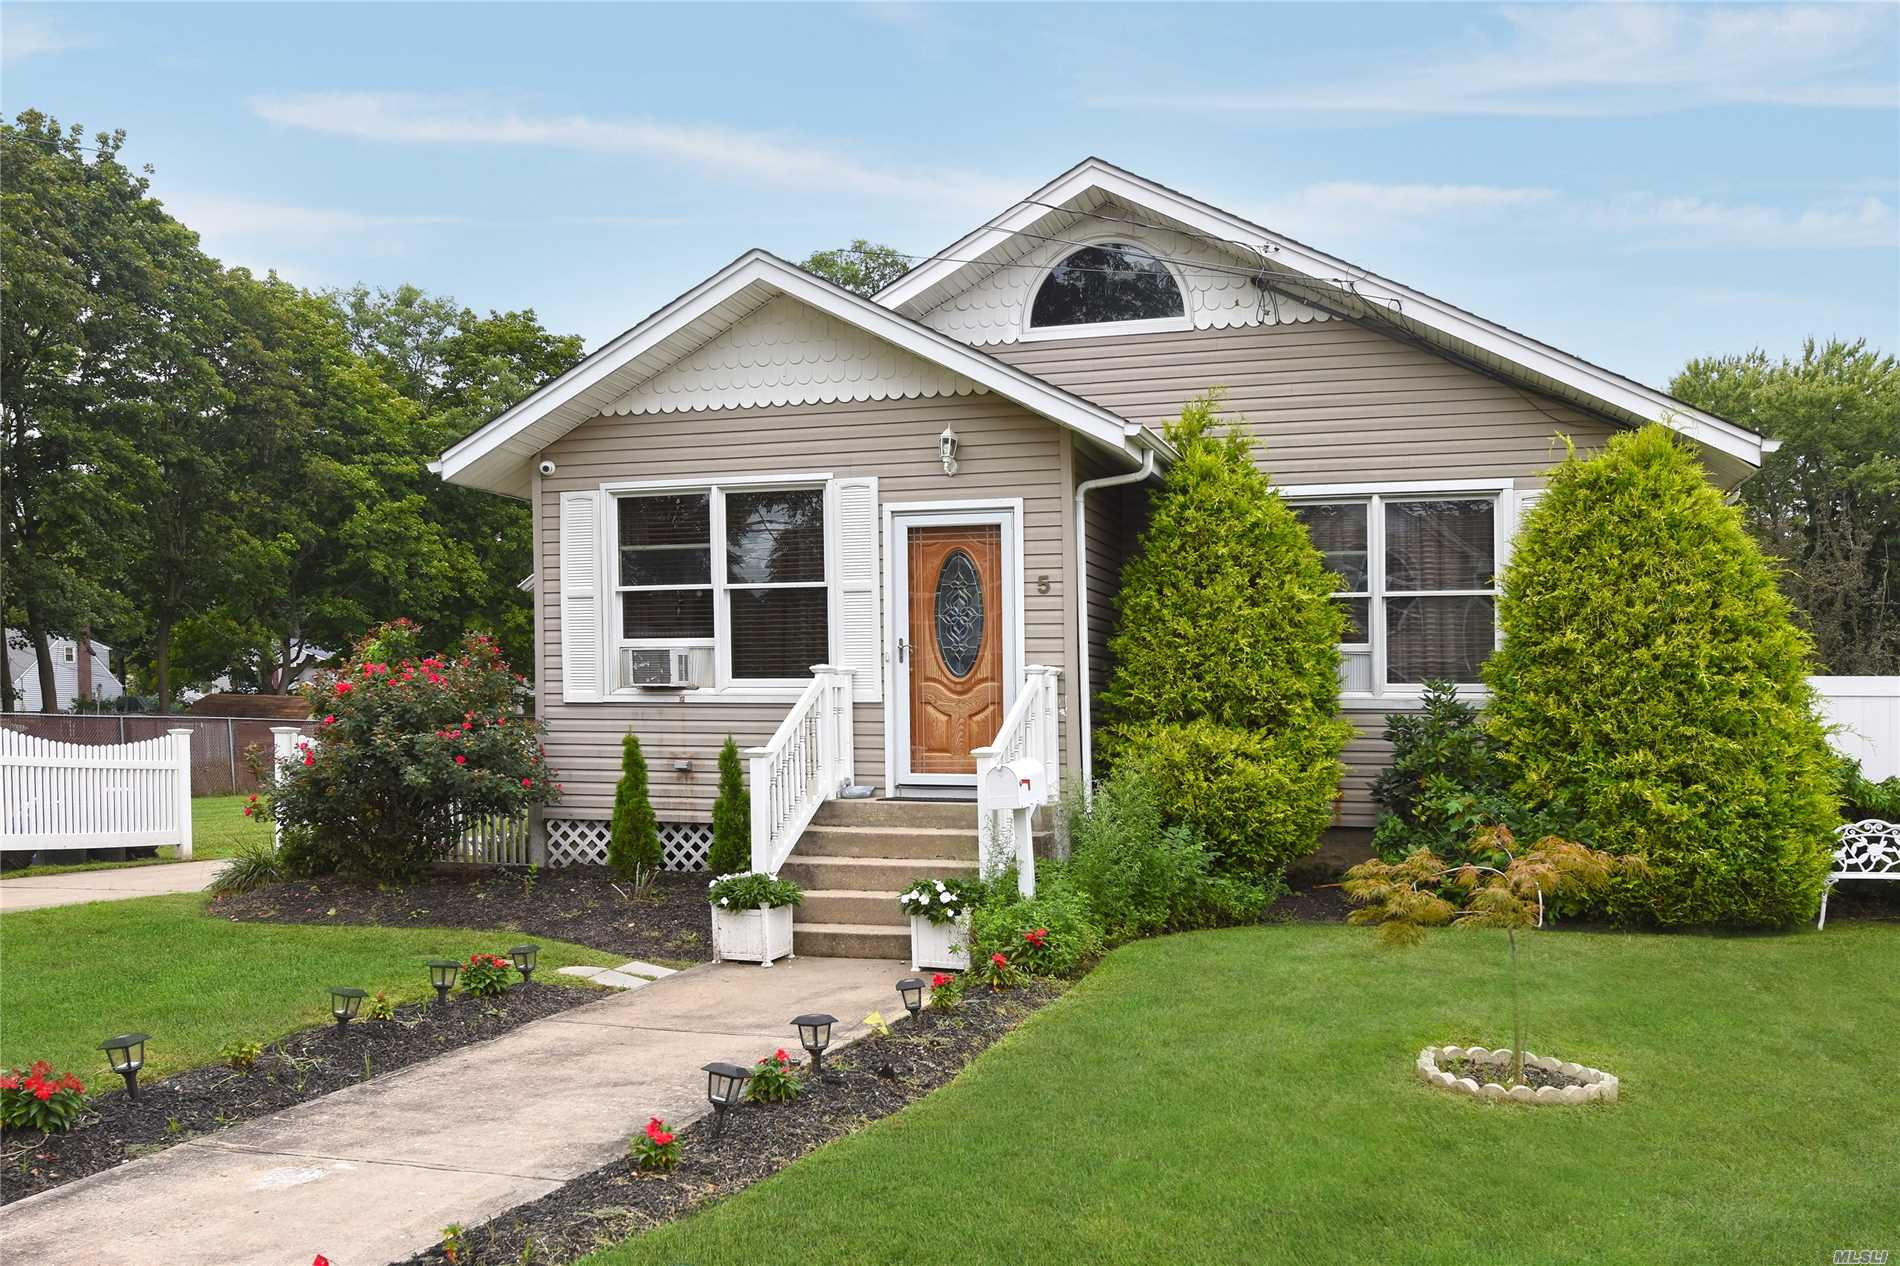 5 Spring St - Wheatley Heights, New York